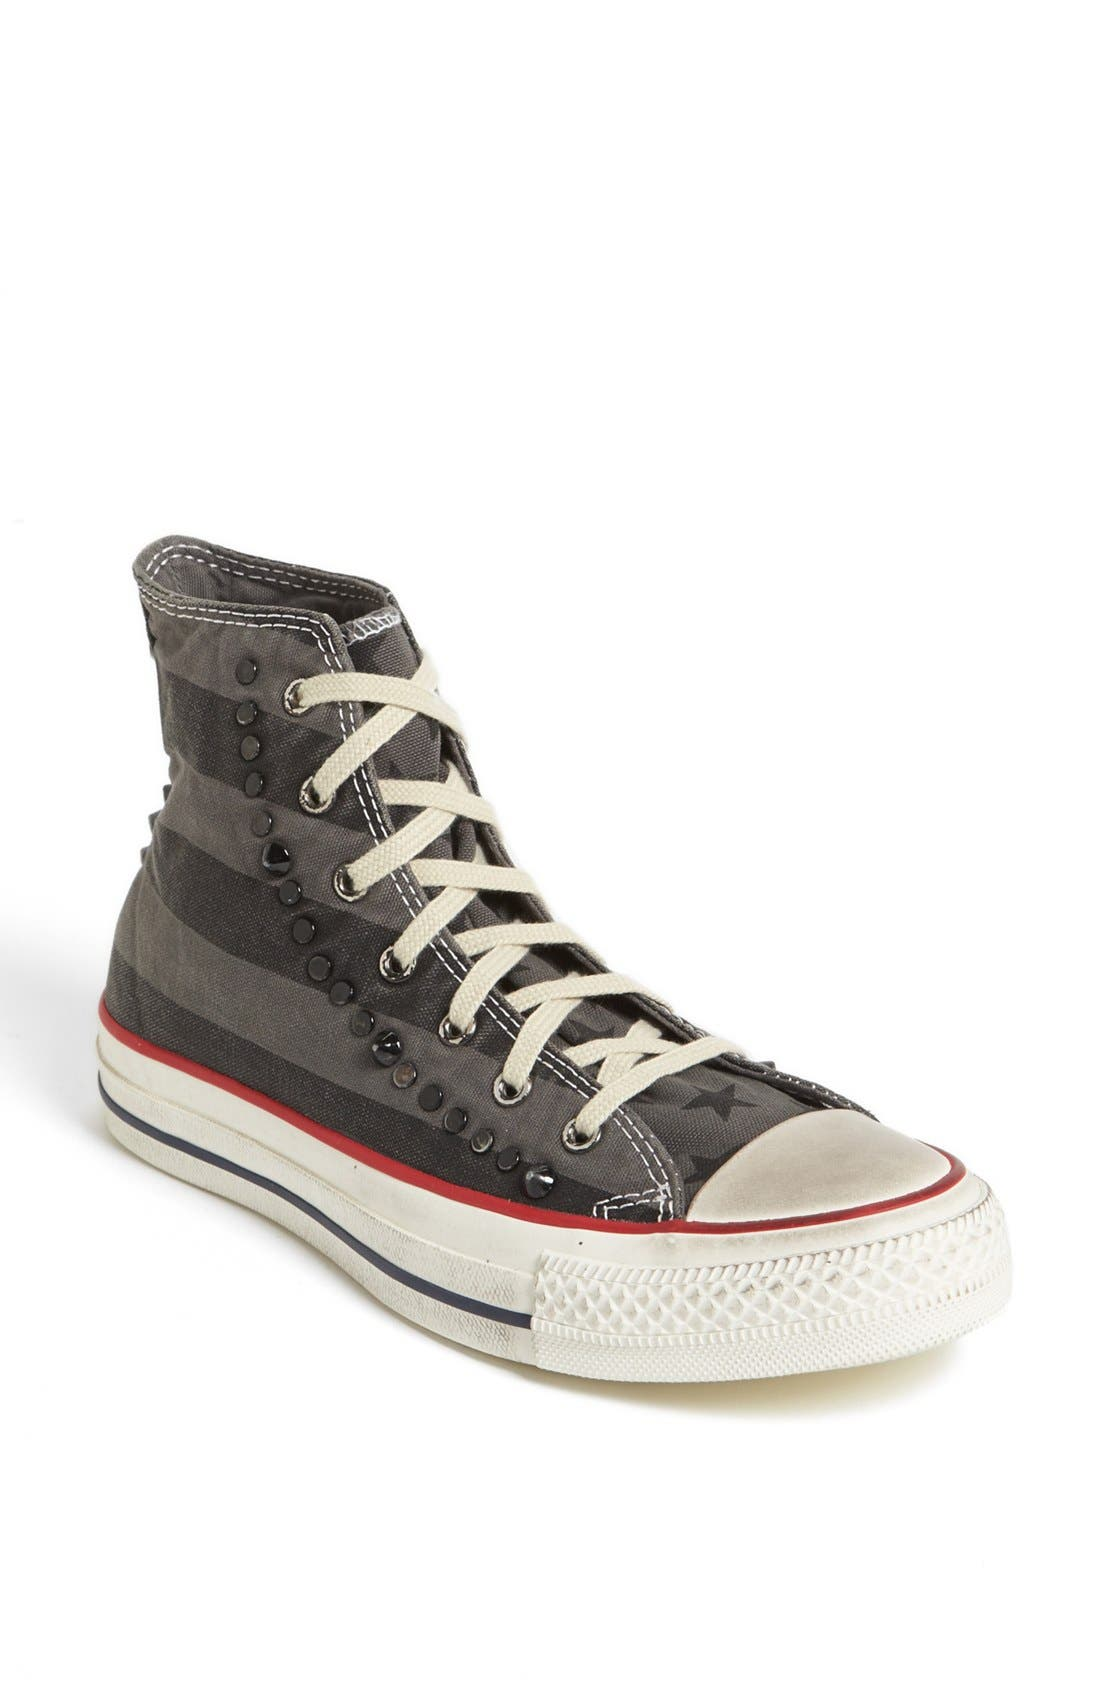 Alternate Image 1 Selected - Converse Chuck Taylor® All Star® High Top Sneaker (Women)